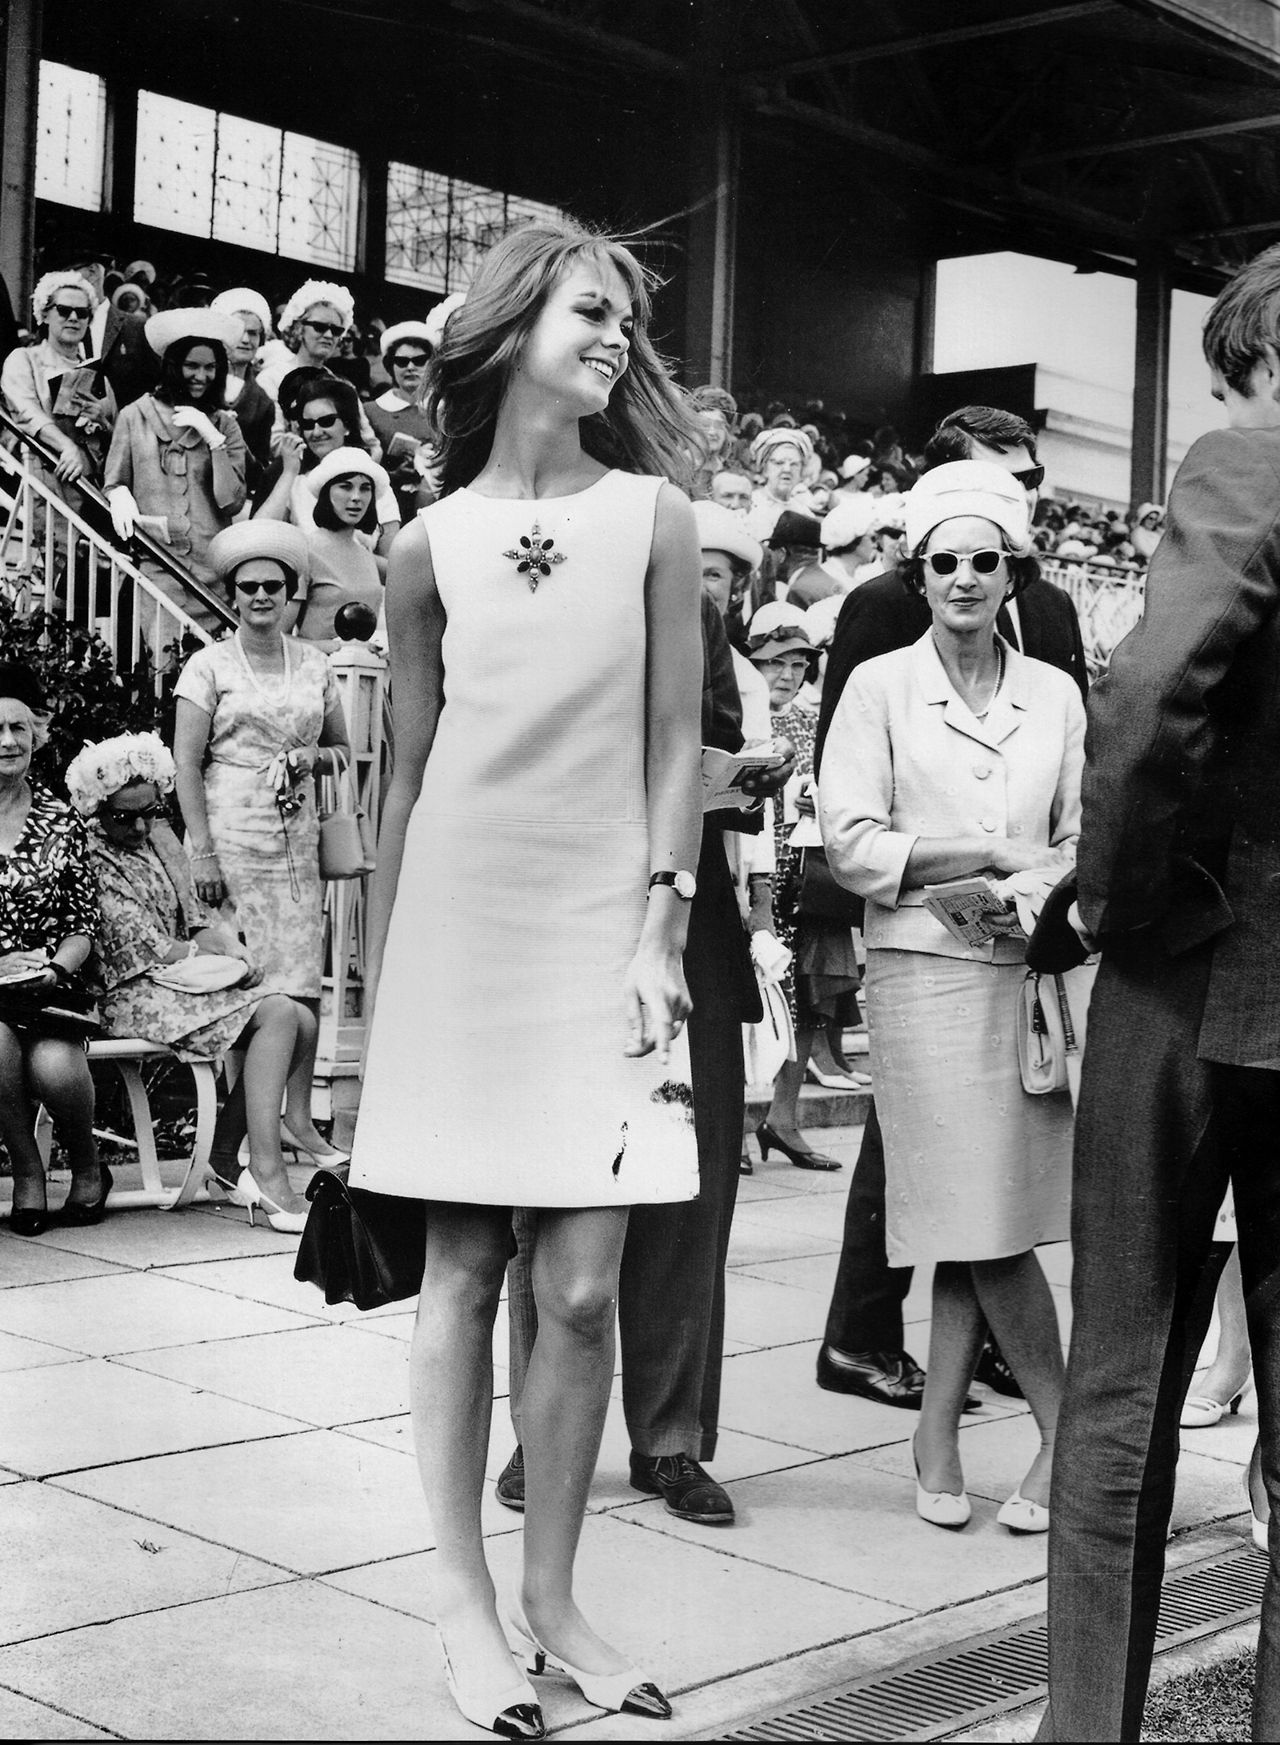 Jean Shrimpton In A Mini Dress Under Observation At The